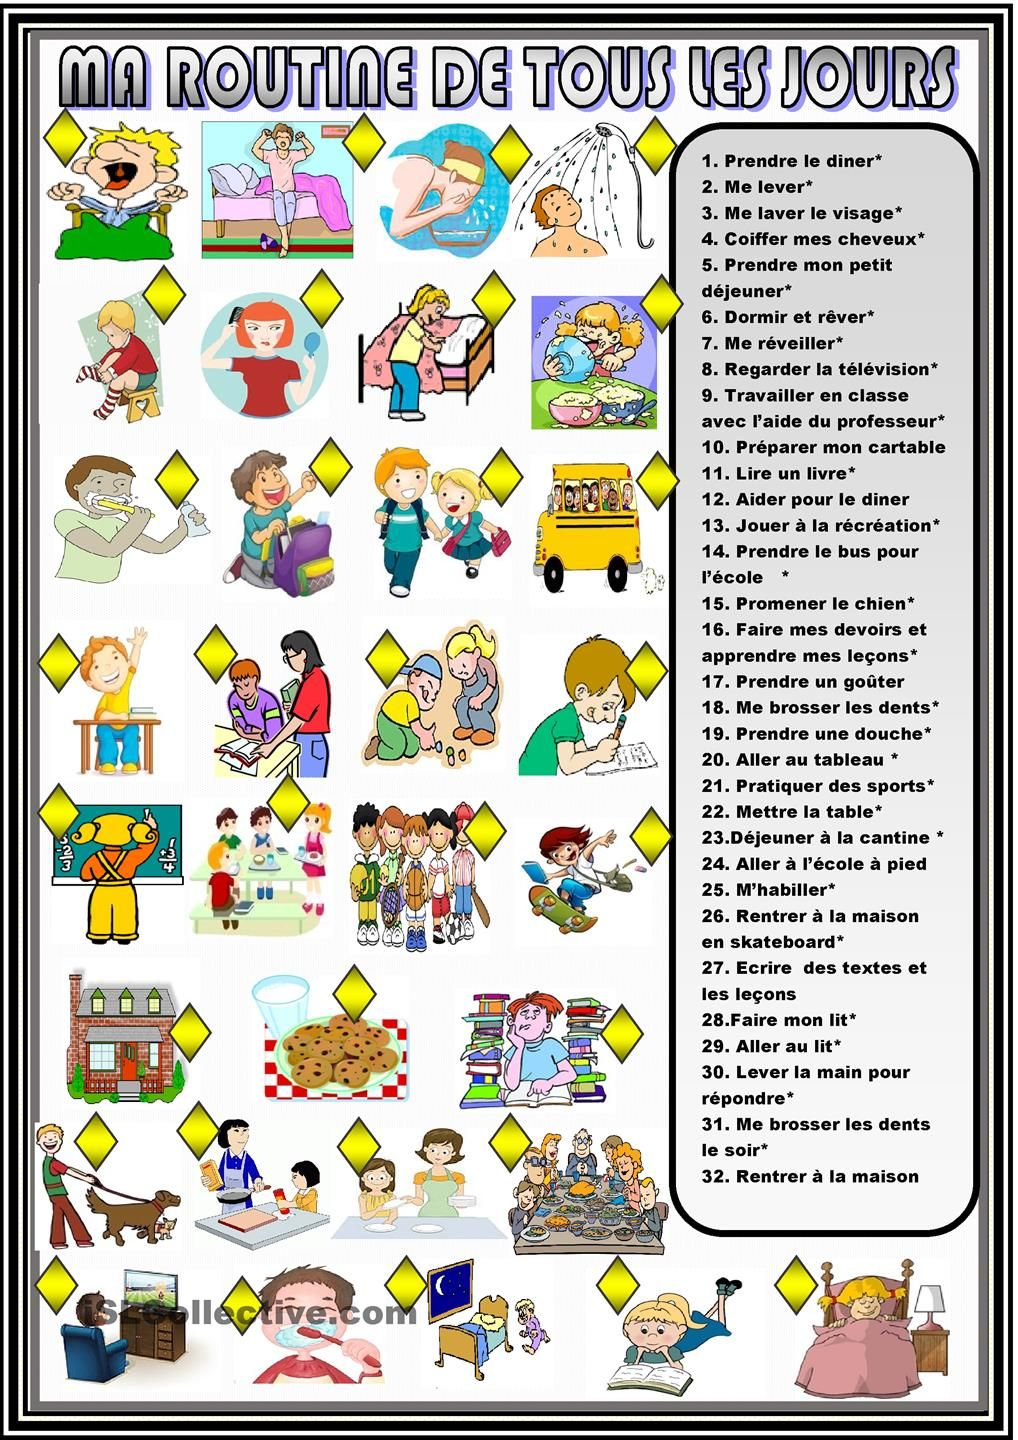 Mes Routines Journalieres Association Daily Routine Worksheet Daily Routine Routine